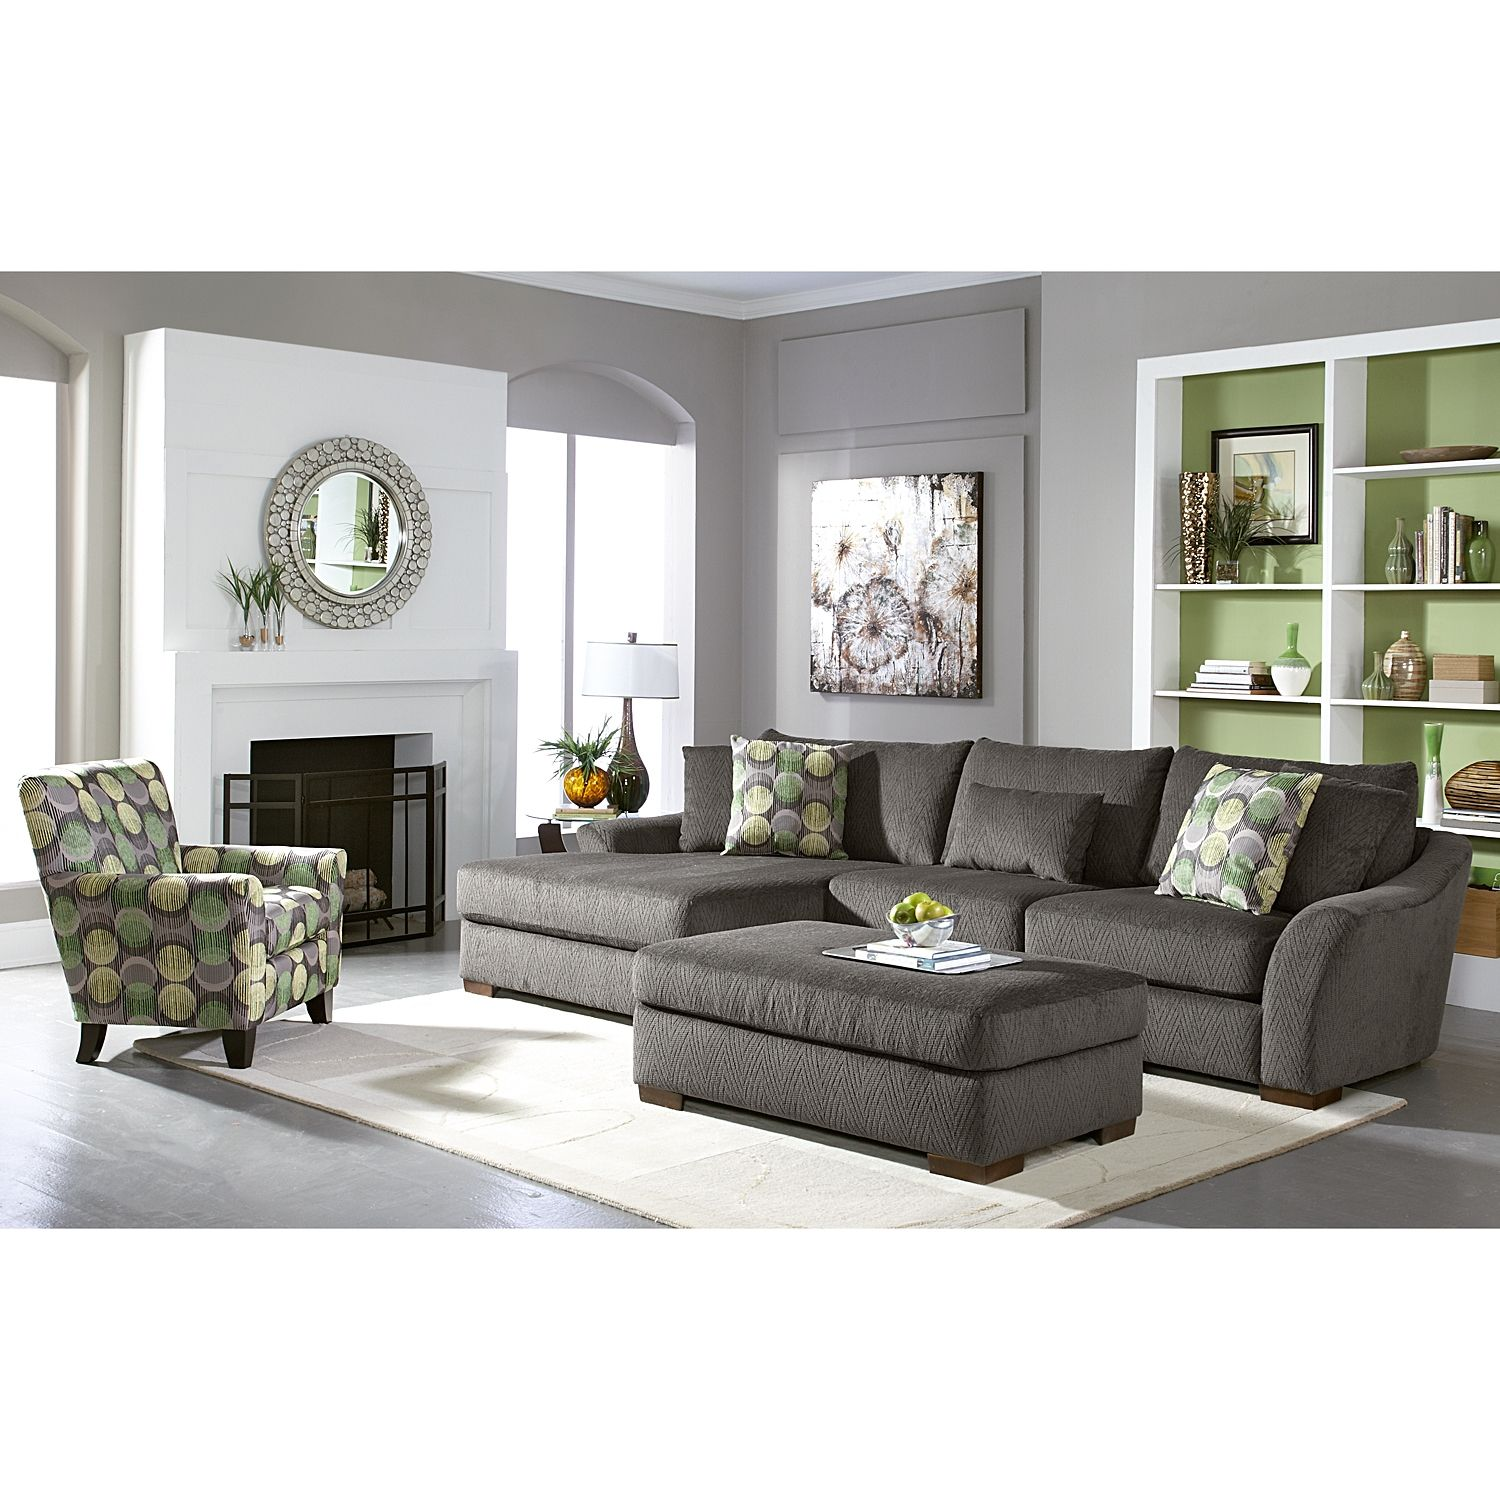 Living Room Pc Exterior Magnificent Living Room Furniture  Oasis 2 Pcsectional  For The Home . Design Decoration